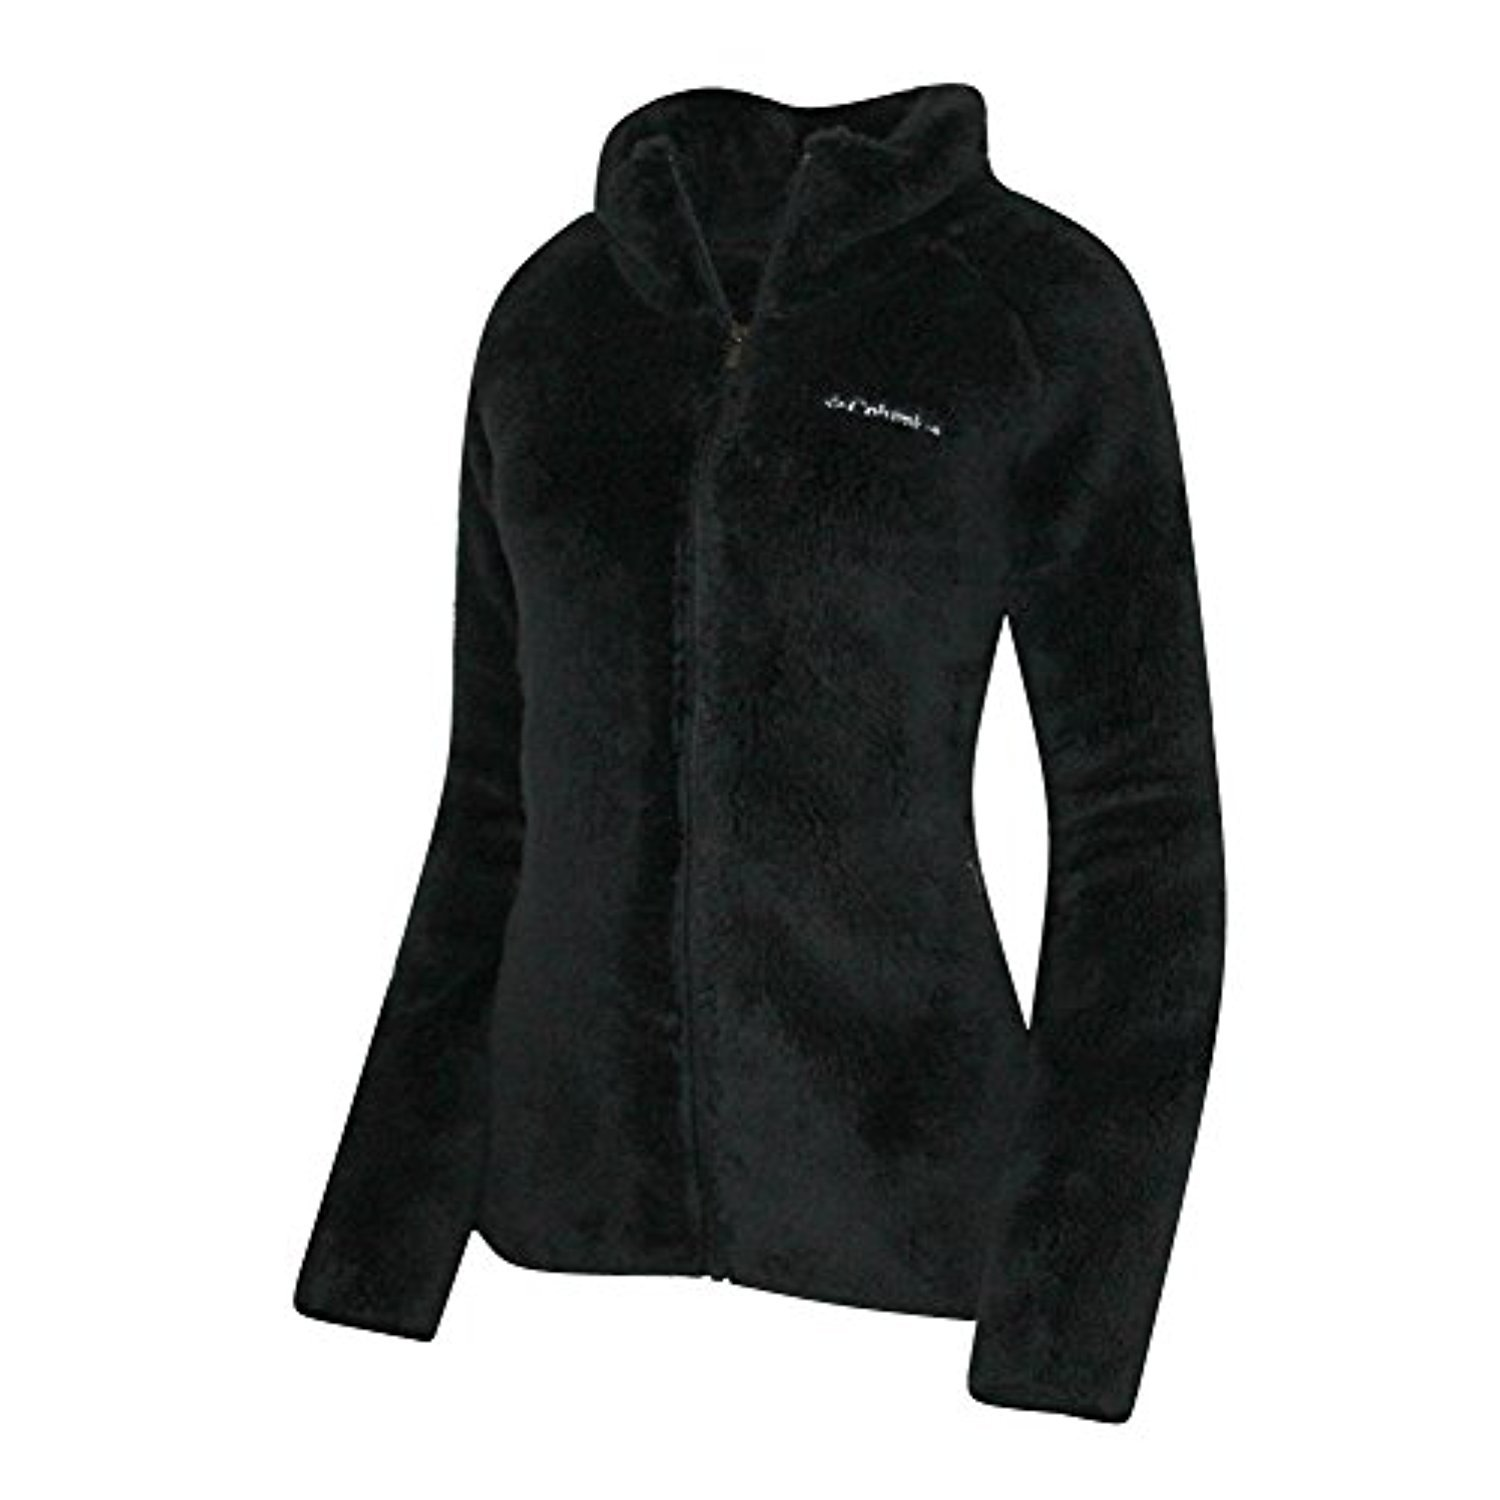 63b5d16f4 Columbia Women's Fast Beauty Plush Super Soft Full Zip Jacket Black